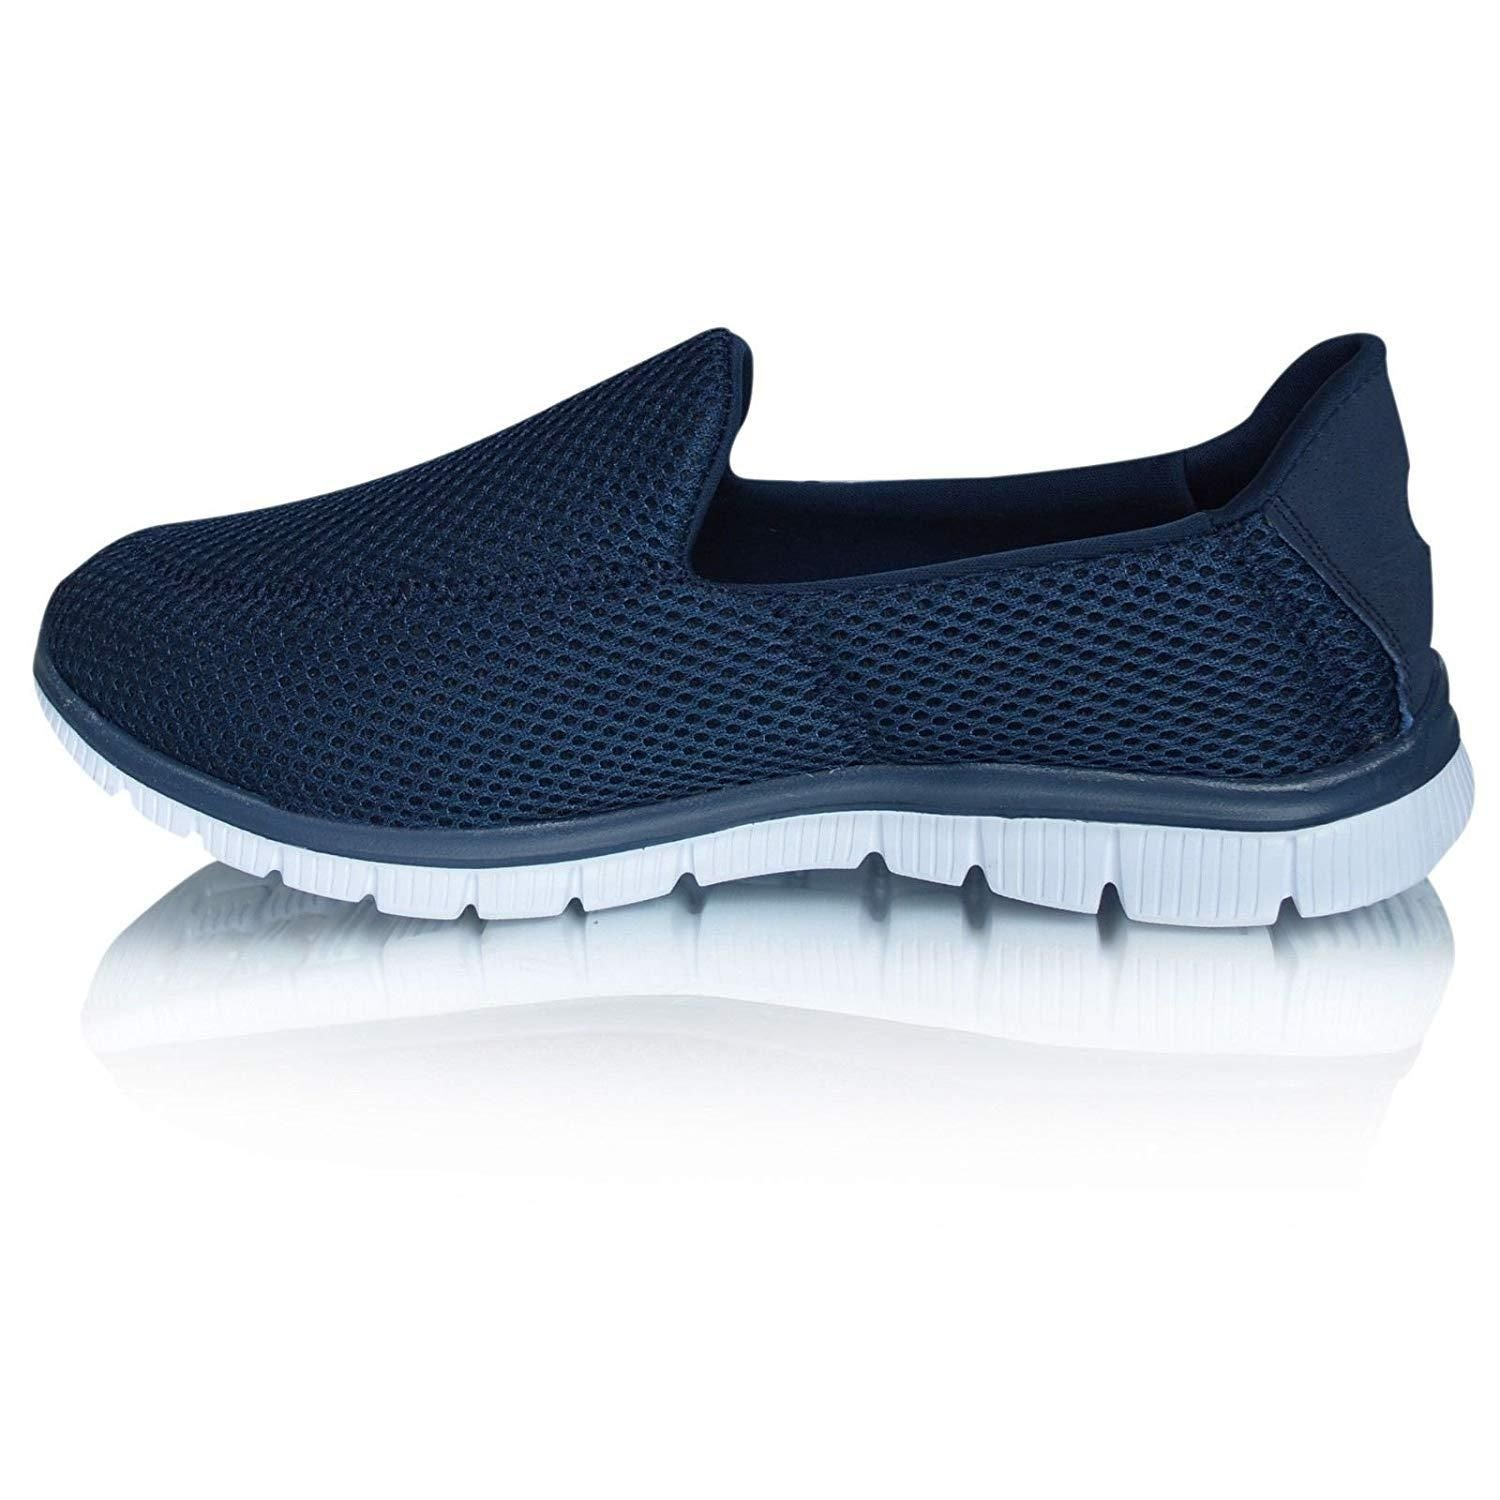 d86a7f1ce37a2e Men s Slip On Go Walk Lightweight Mesh Breathable Casual Trainers ...